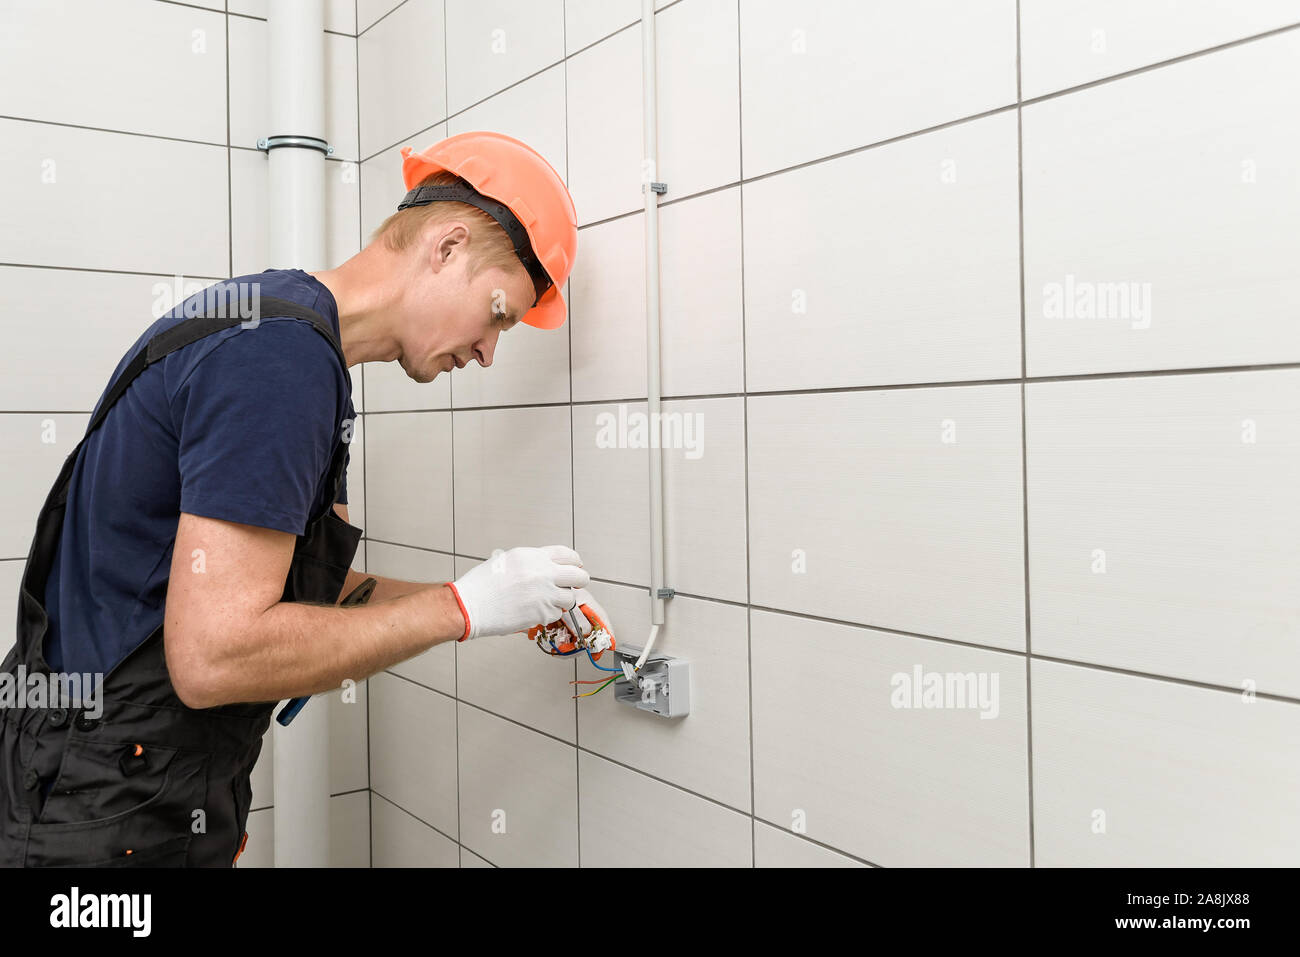 The electrician is installing an electrical outlet on the wall. Stock Photo